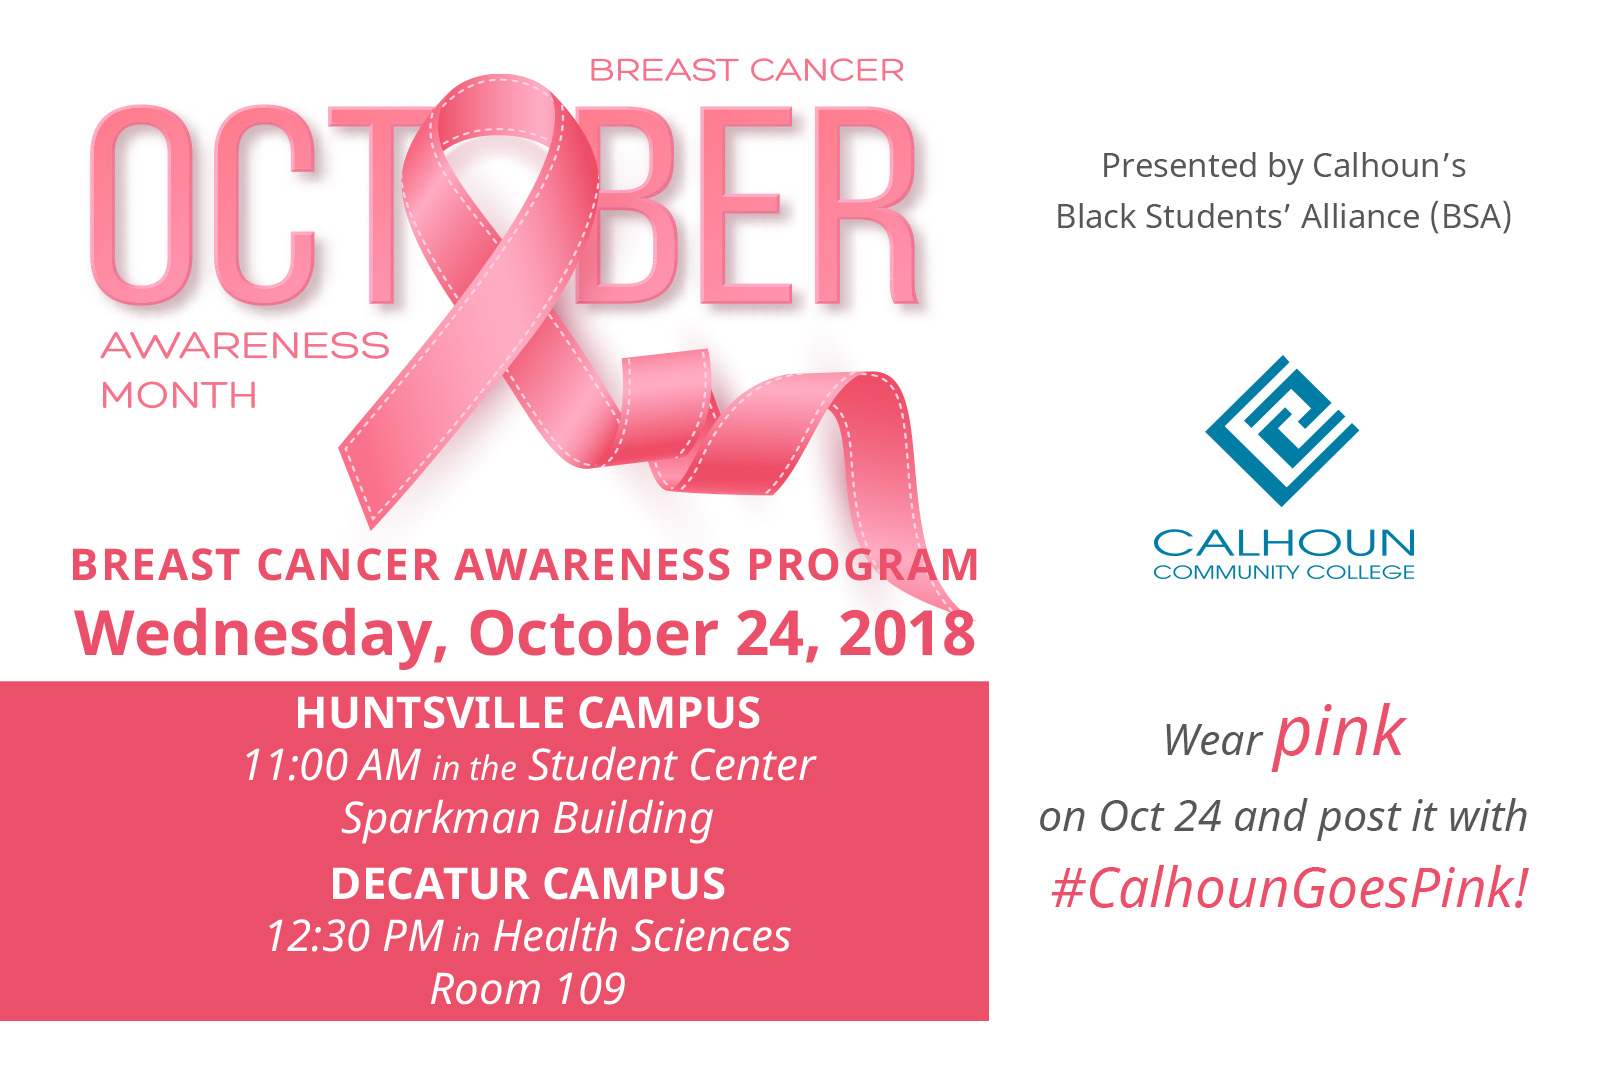 October is Breast Cancer Awareness Month. Breast Cancer Awareness program Wednesday, October 24, 2018. Huntsville Campus, 11:00 AM in the Student Center. Decatur Campus, 12:30 PM in Health Sciences 109. Presented by Calhoun's Black Students' Alliance. Calhoun Community College. Wear pink on Oct 24 and post it with #calhoungoespink